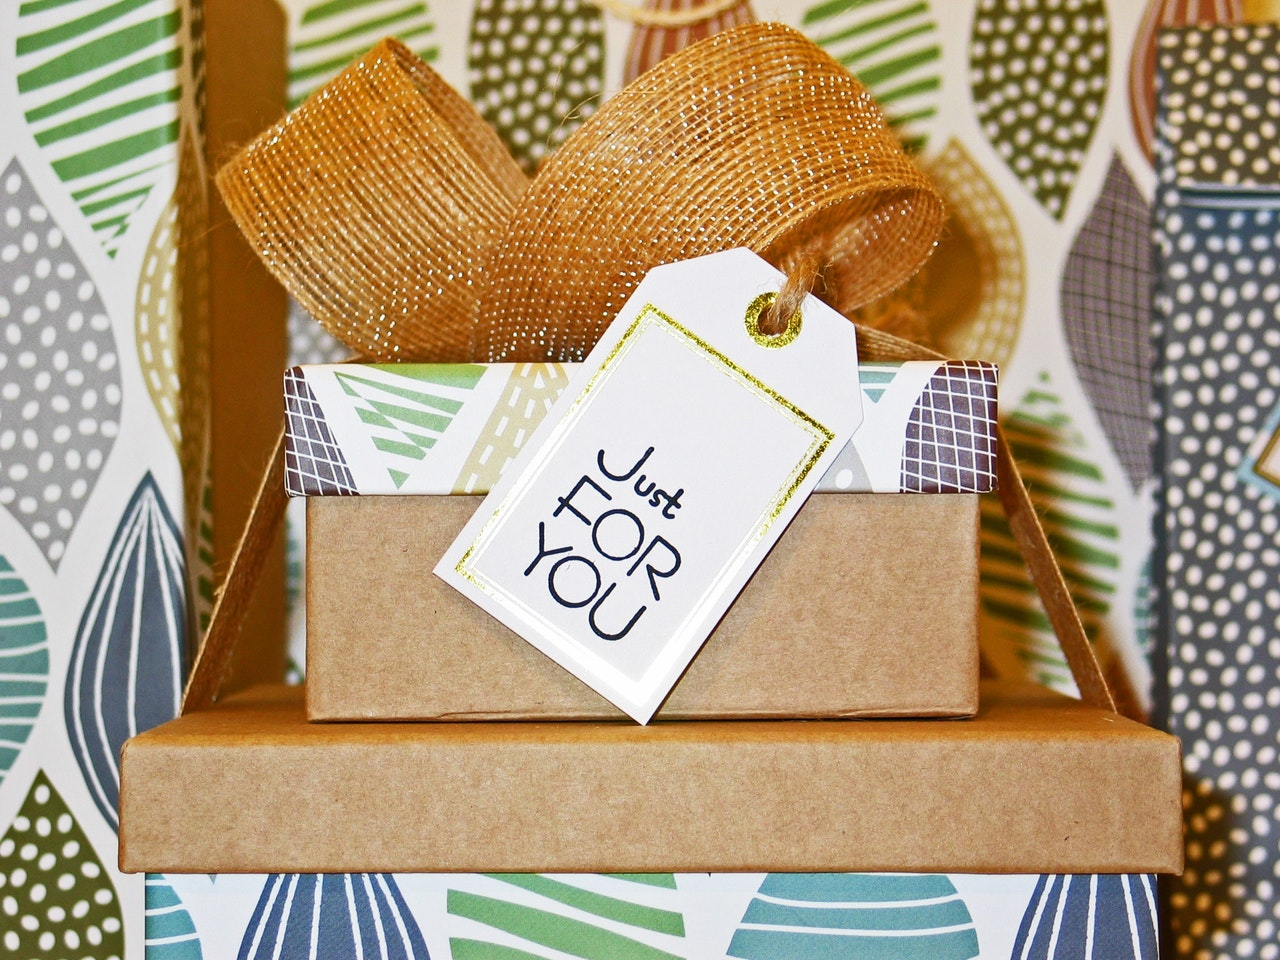 Gift ideas for move-in party